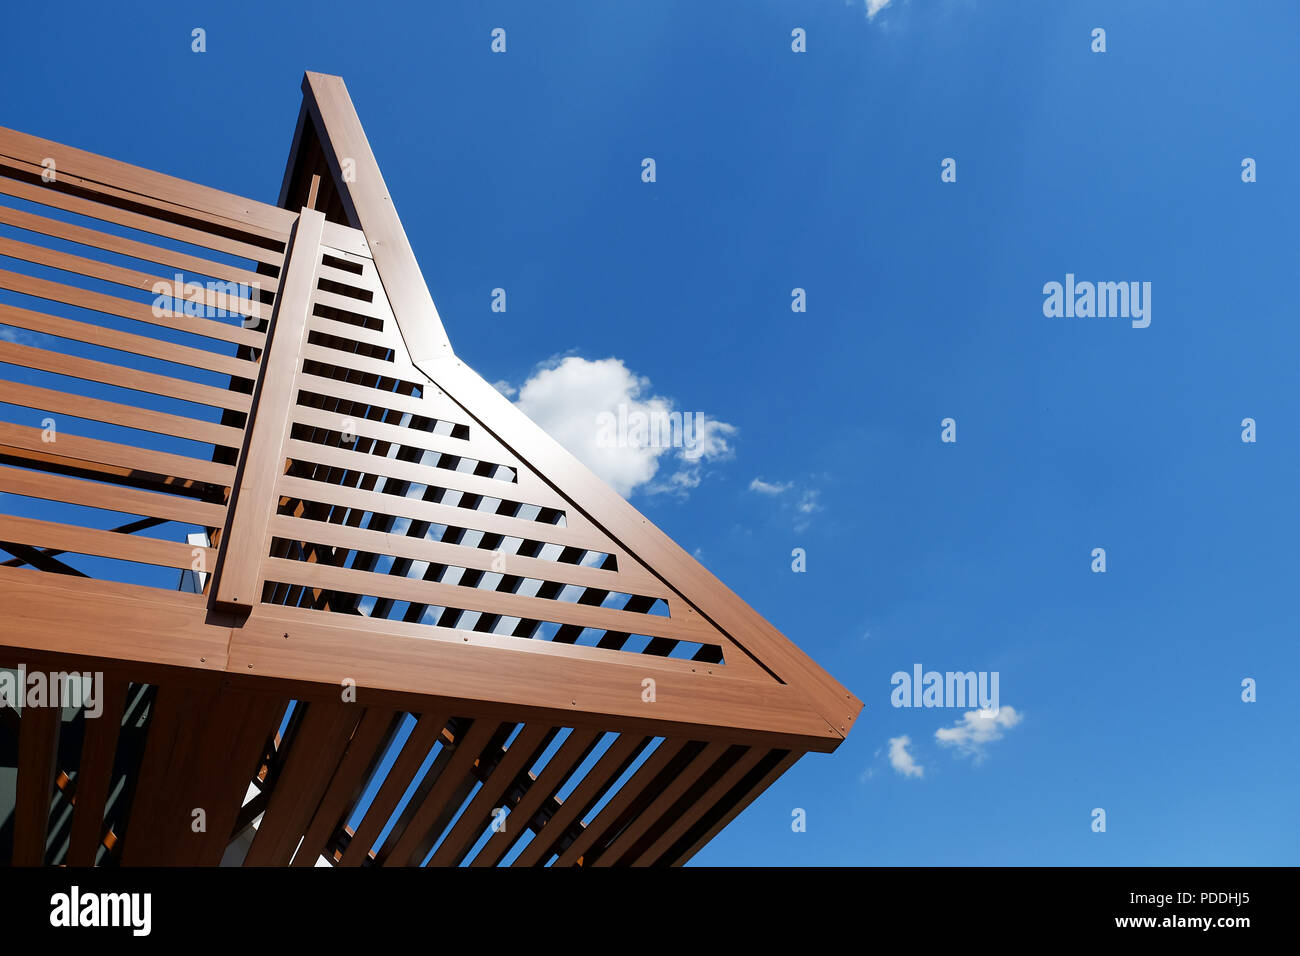 Residential patio or terrace awning in cafee - Stock Image